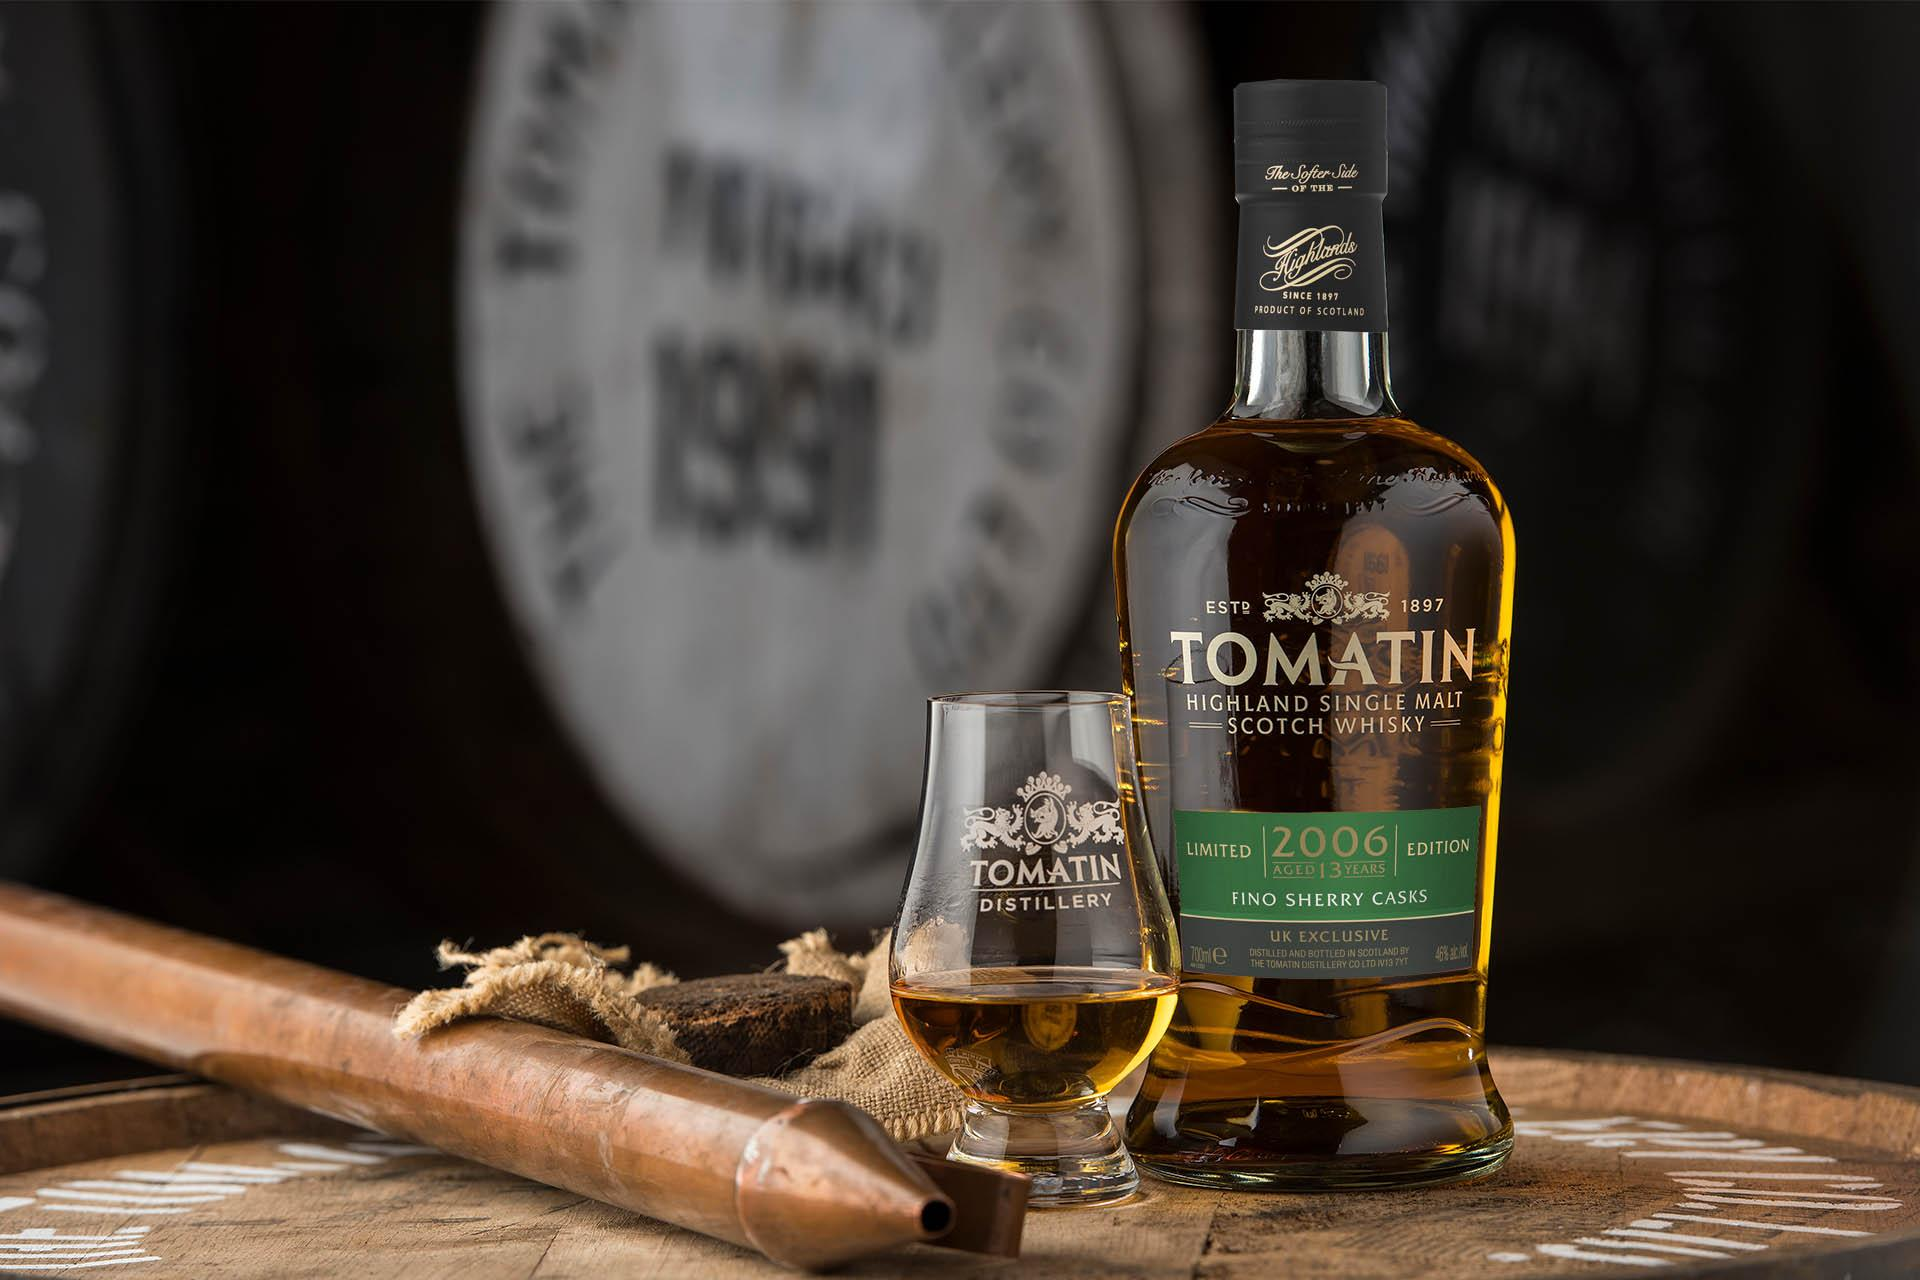 Tomatin 2006 13 Year Old Fino Sherry Cask